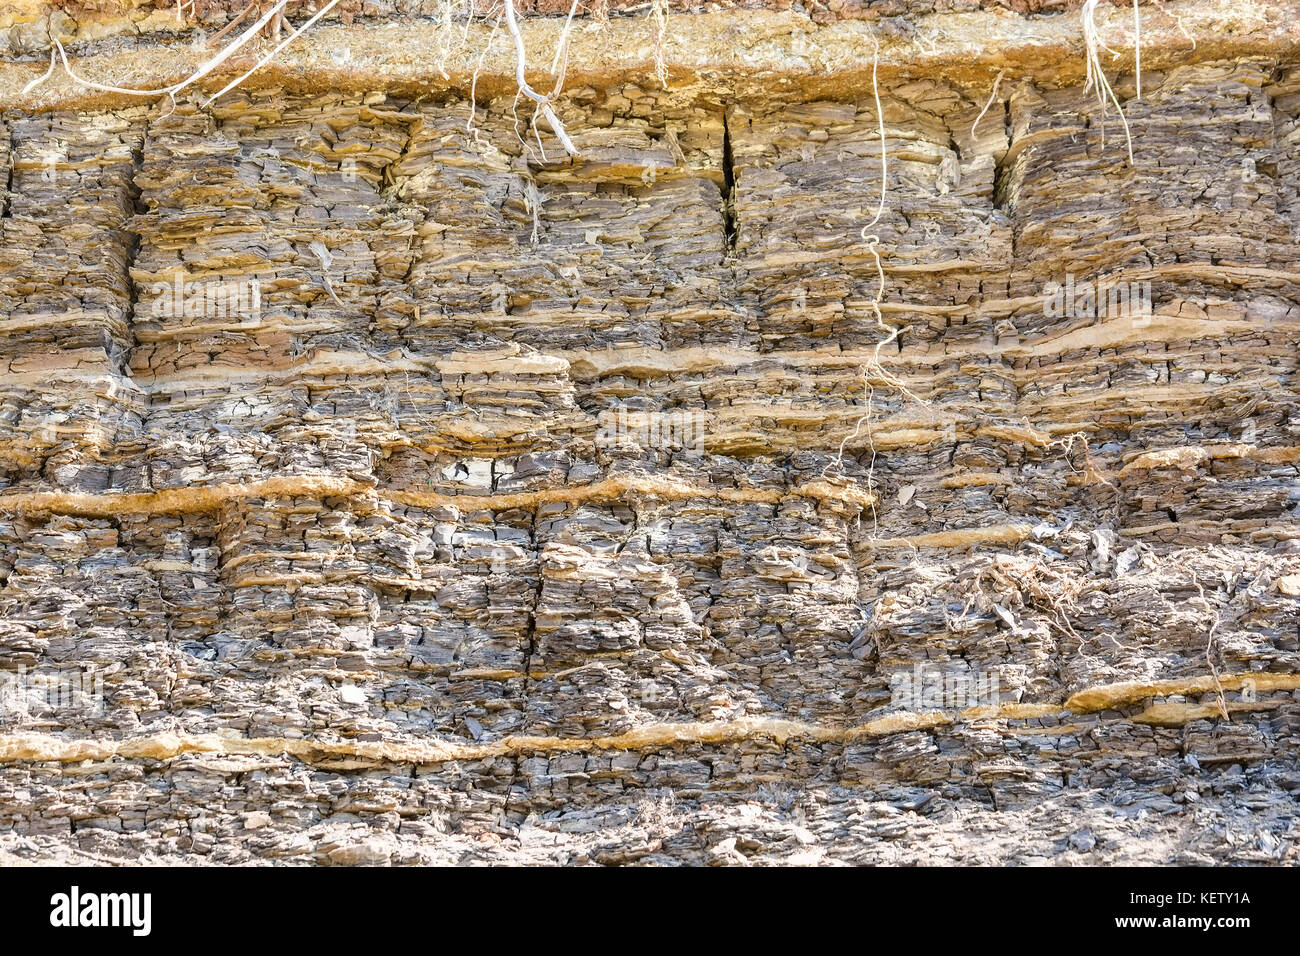 Layers of sedimentary sandstone rock Stock Photo